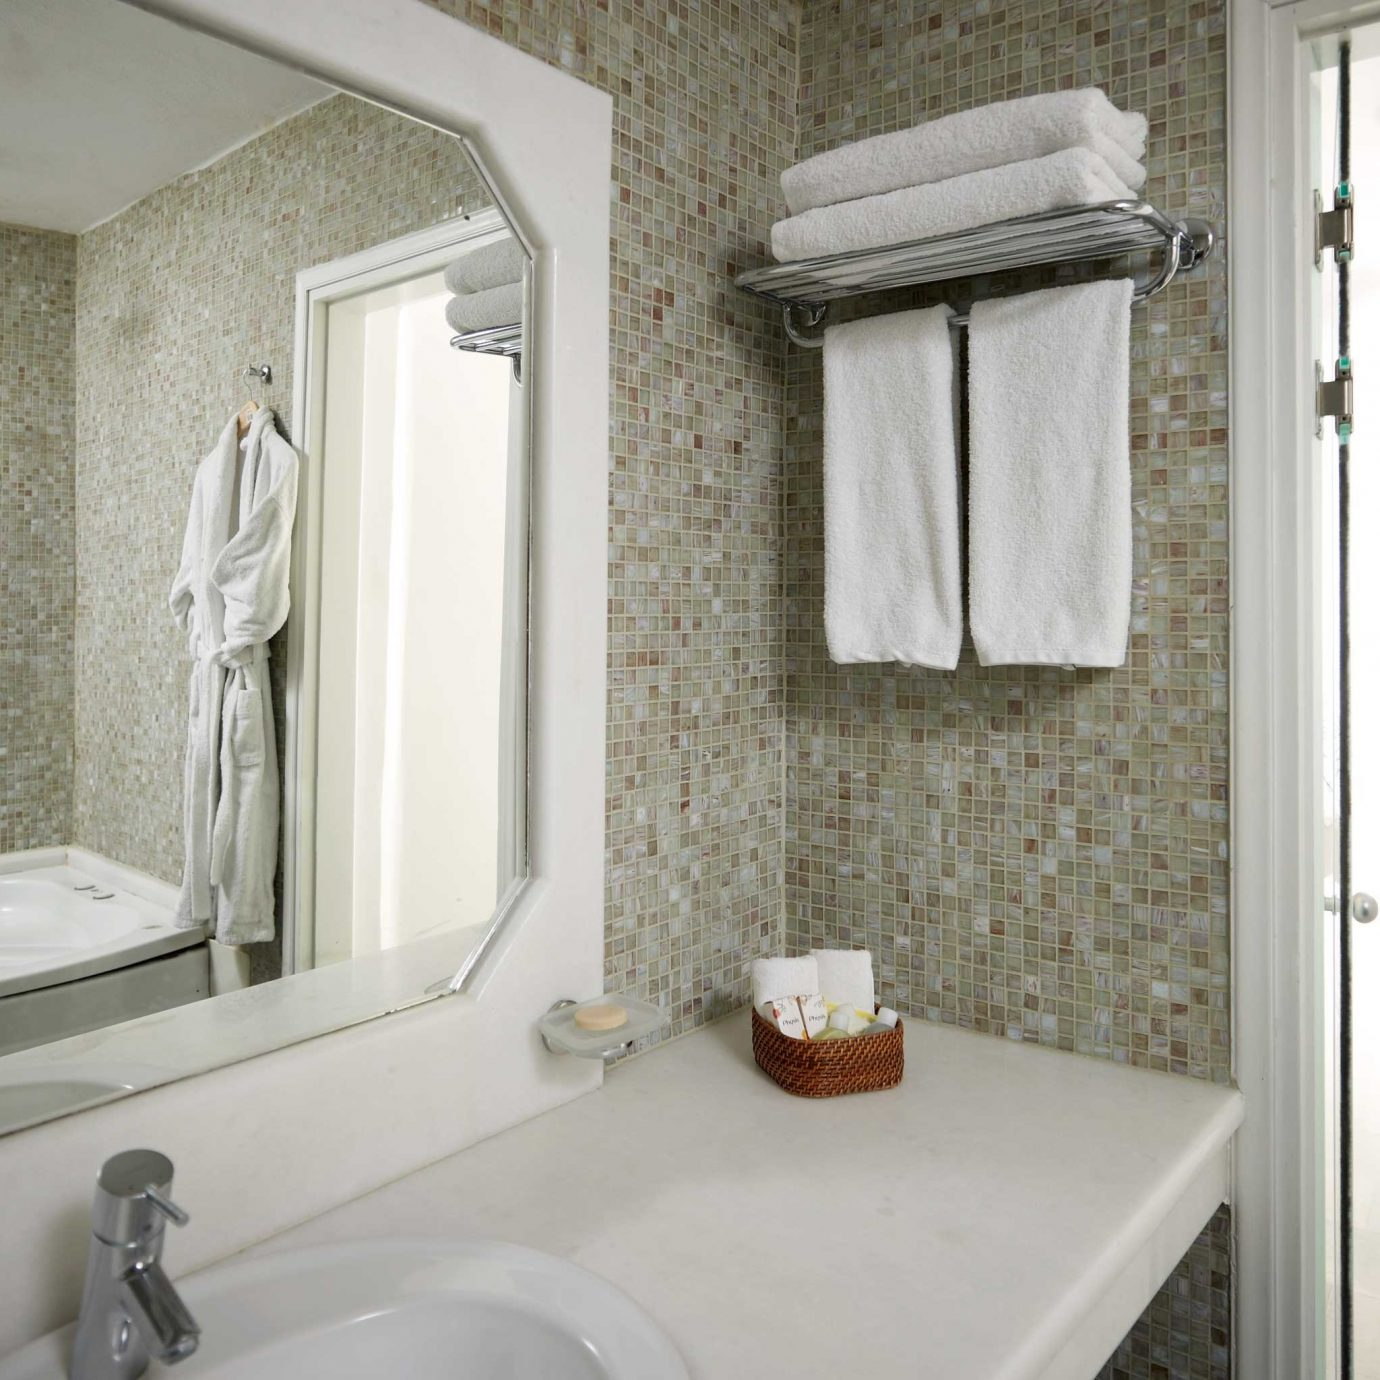 bathroom sink property mirror toilet home white cottage Suite plumbing fixture Bath